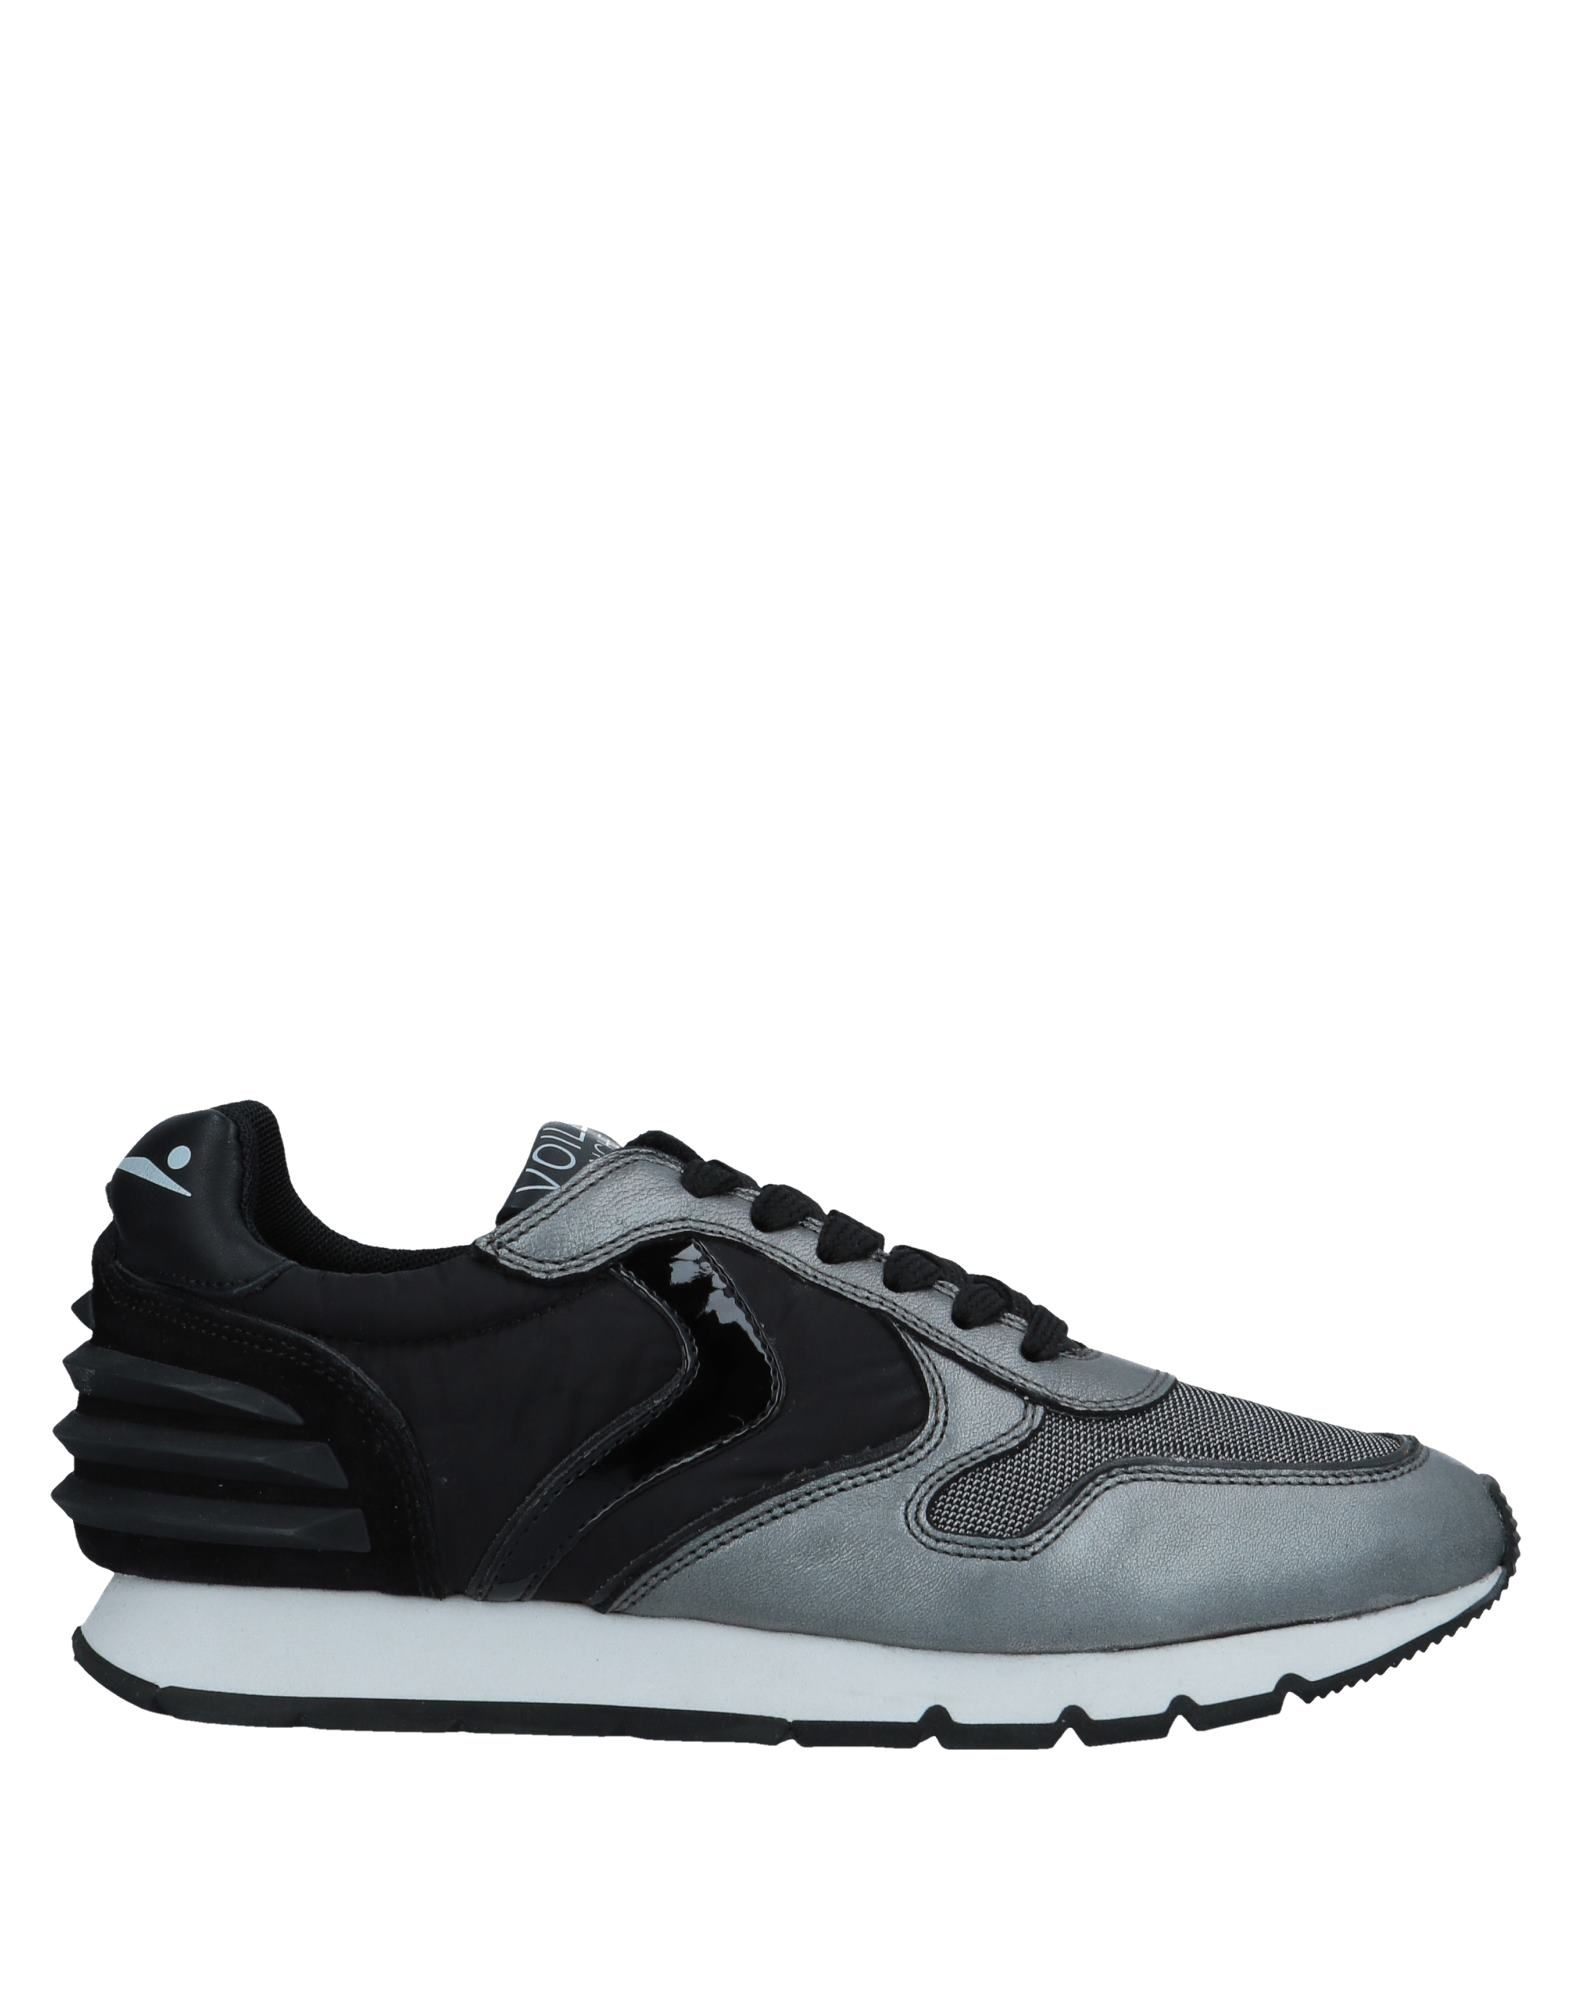 Voile Blanche Sneakers Sneakers - Women Voile Blanche Sneakers Sneakers online on  United Kingdom - 11580726RV bb96f1